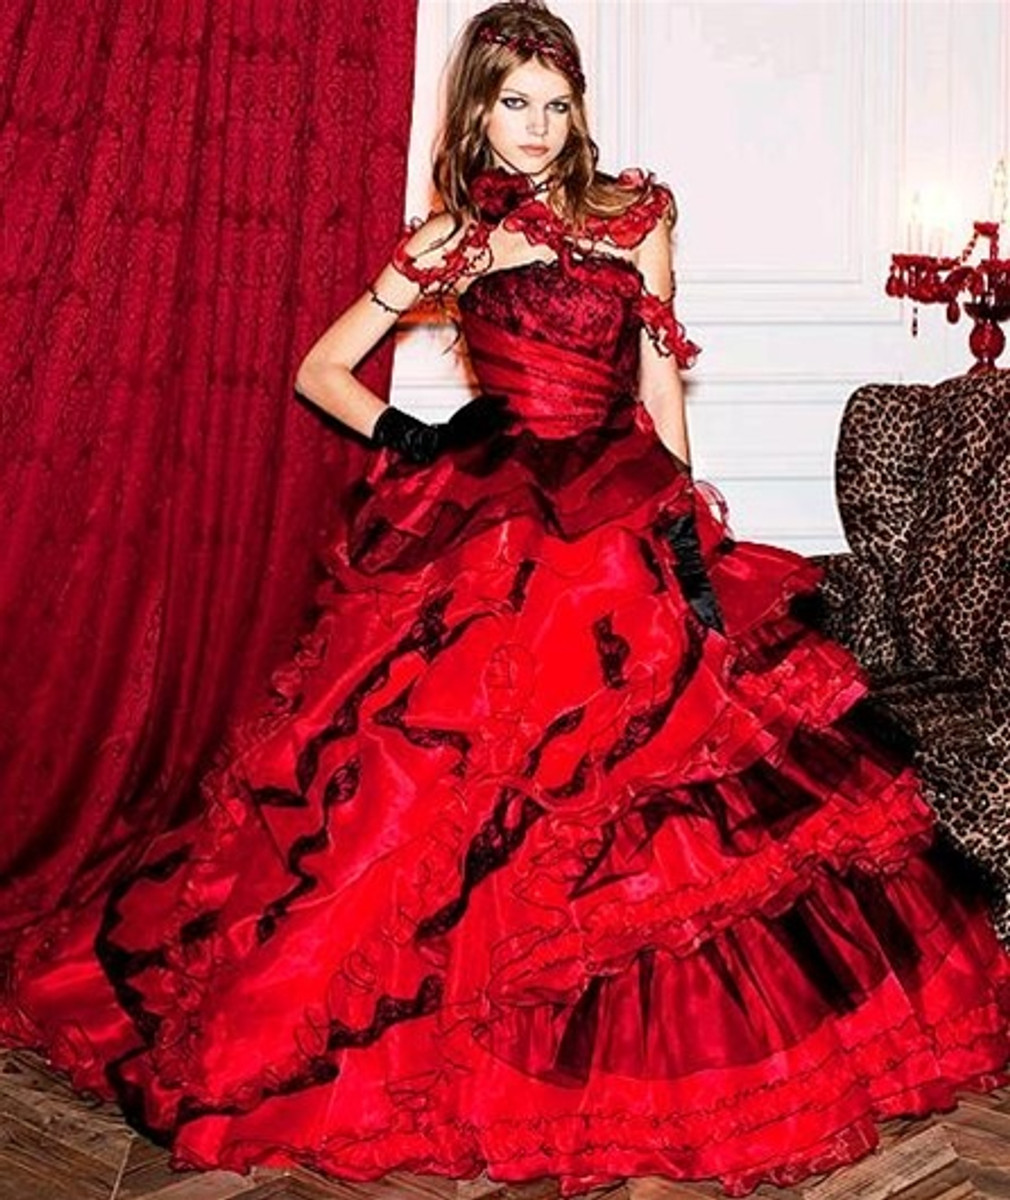 Red Wedding Dresses.Red Wedding Dress With Black Details